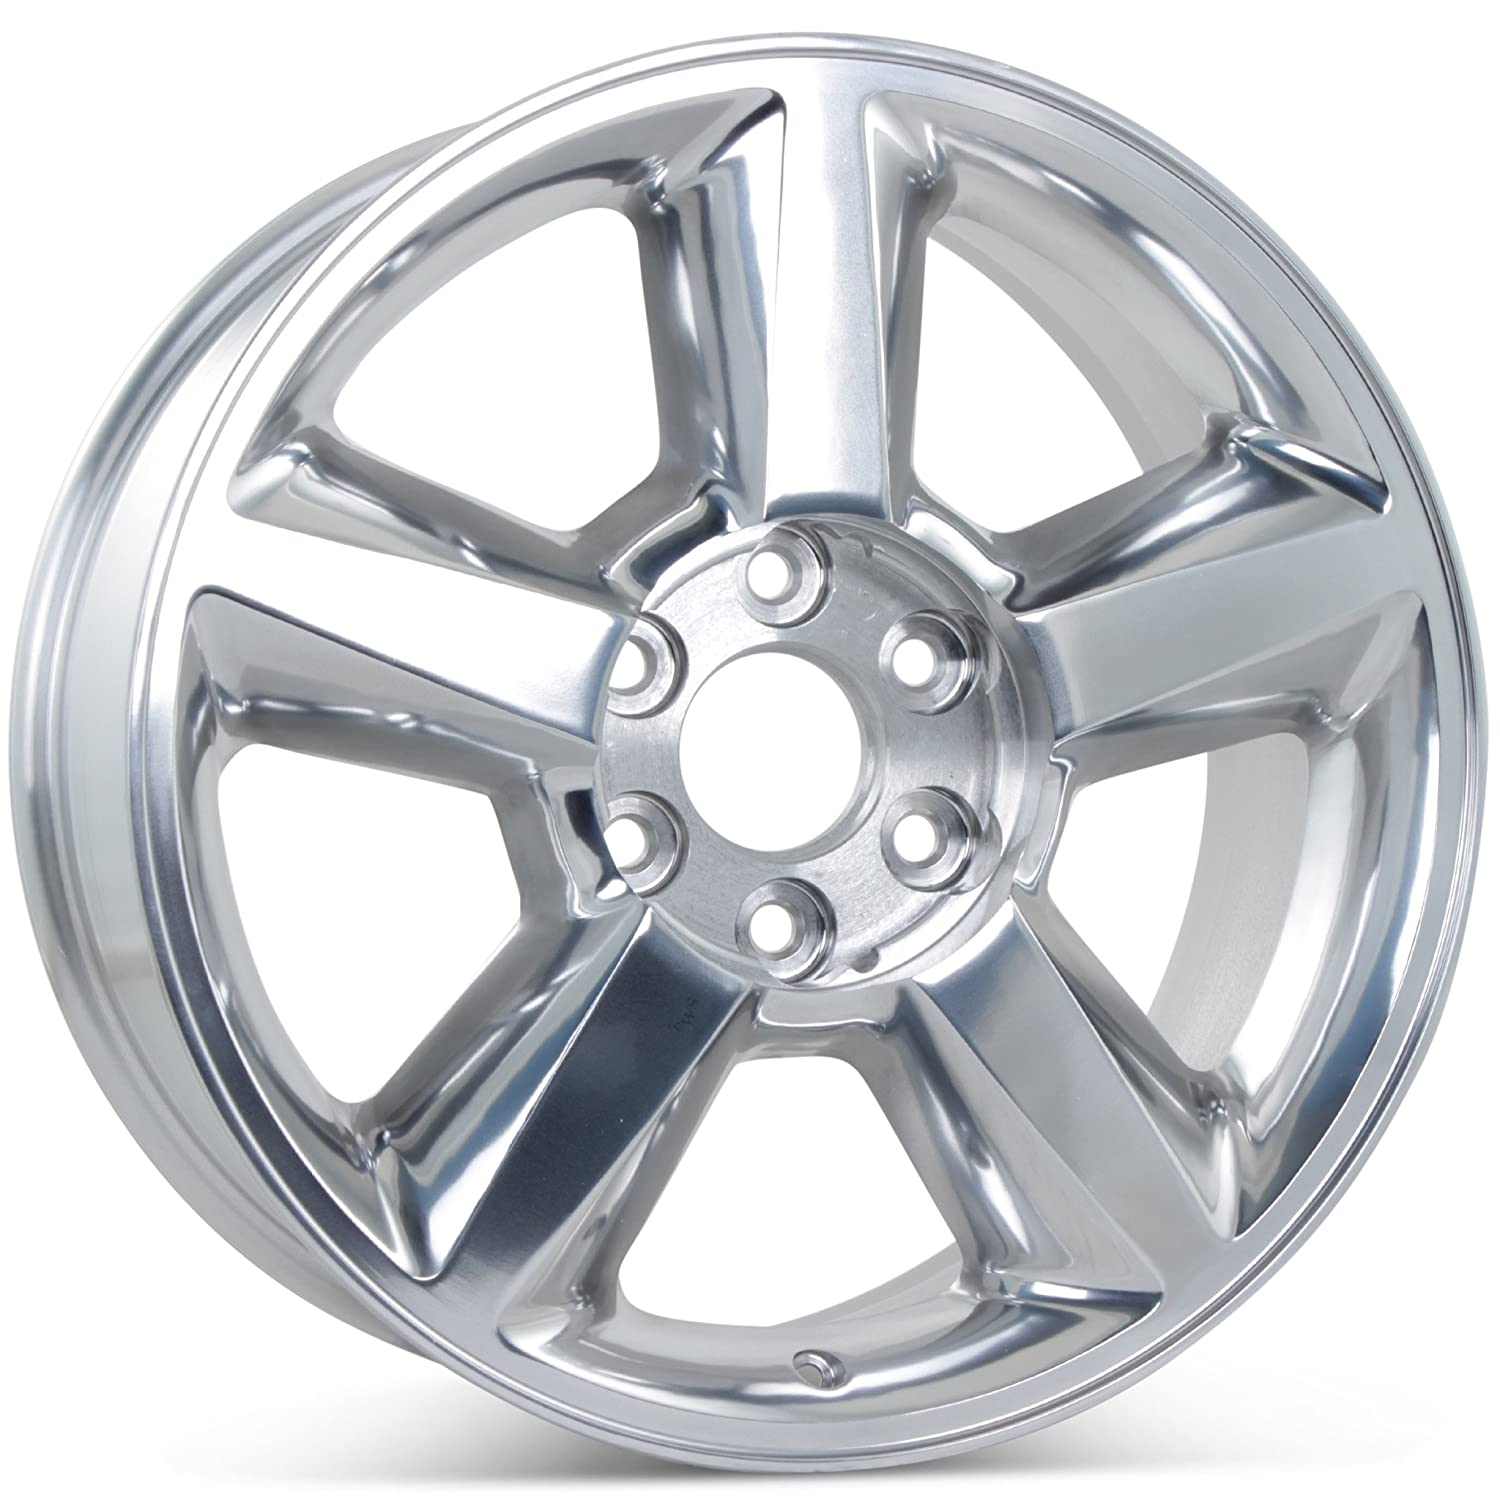 New 20 x 8.5 Replacement Wheel for Chevy Avalanche Silverado Suburban Tahoe 5308